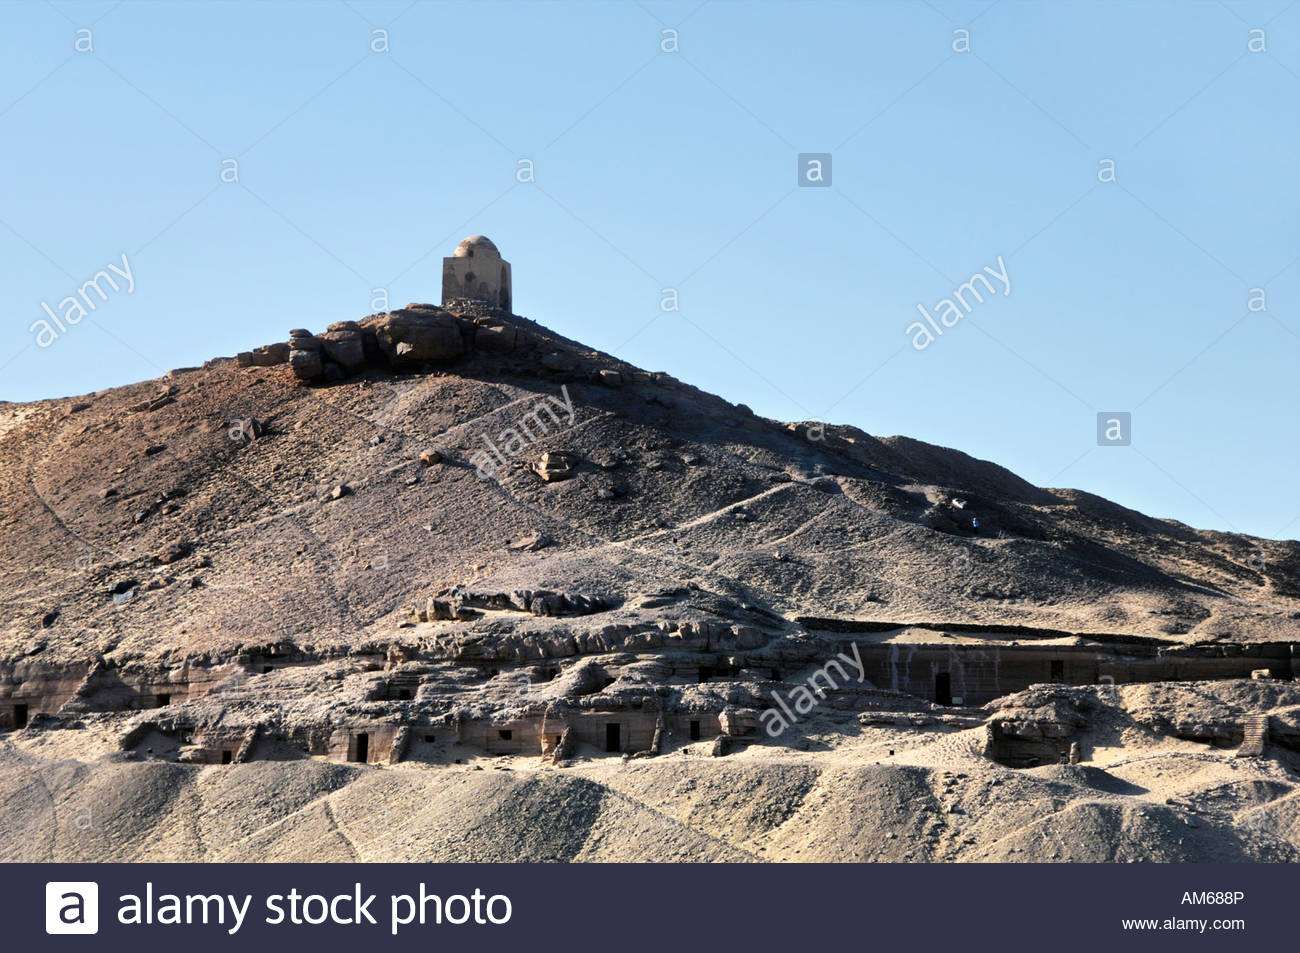 Qubbet Al Hawa Aswan, Tombs of Nobles and Qubbet el Hawa or Dome of the Winds Aswan ...